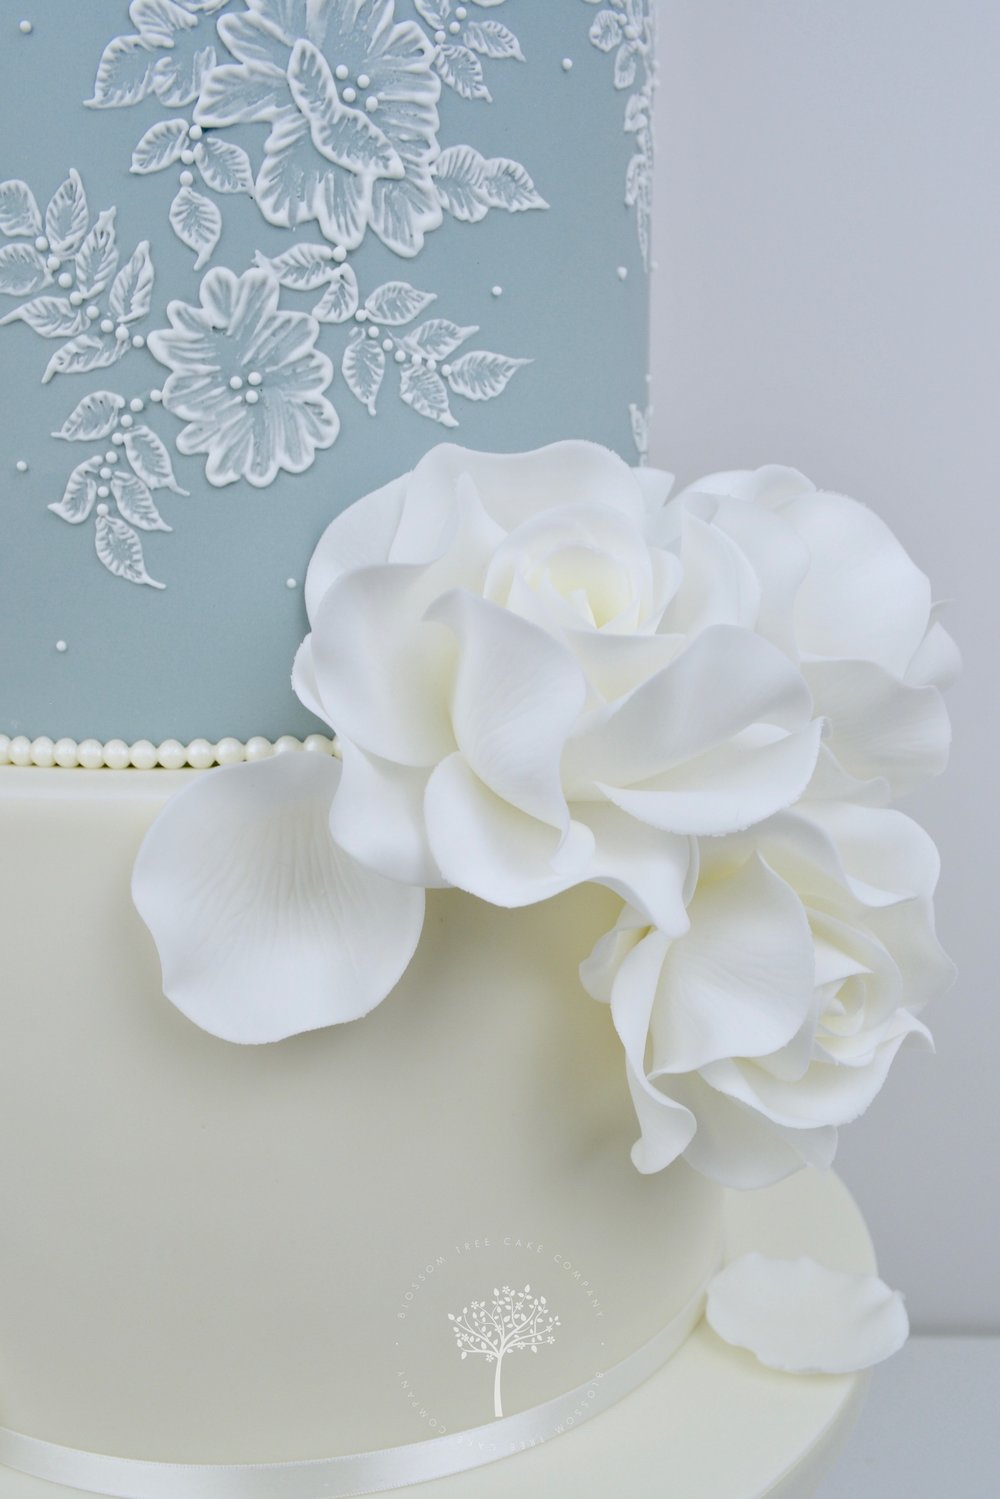 White Roses and Lace wedding cake by Blossom Tree Cake Company Harrogate North Yorkshire - embroidery lace icing.jpg